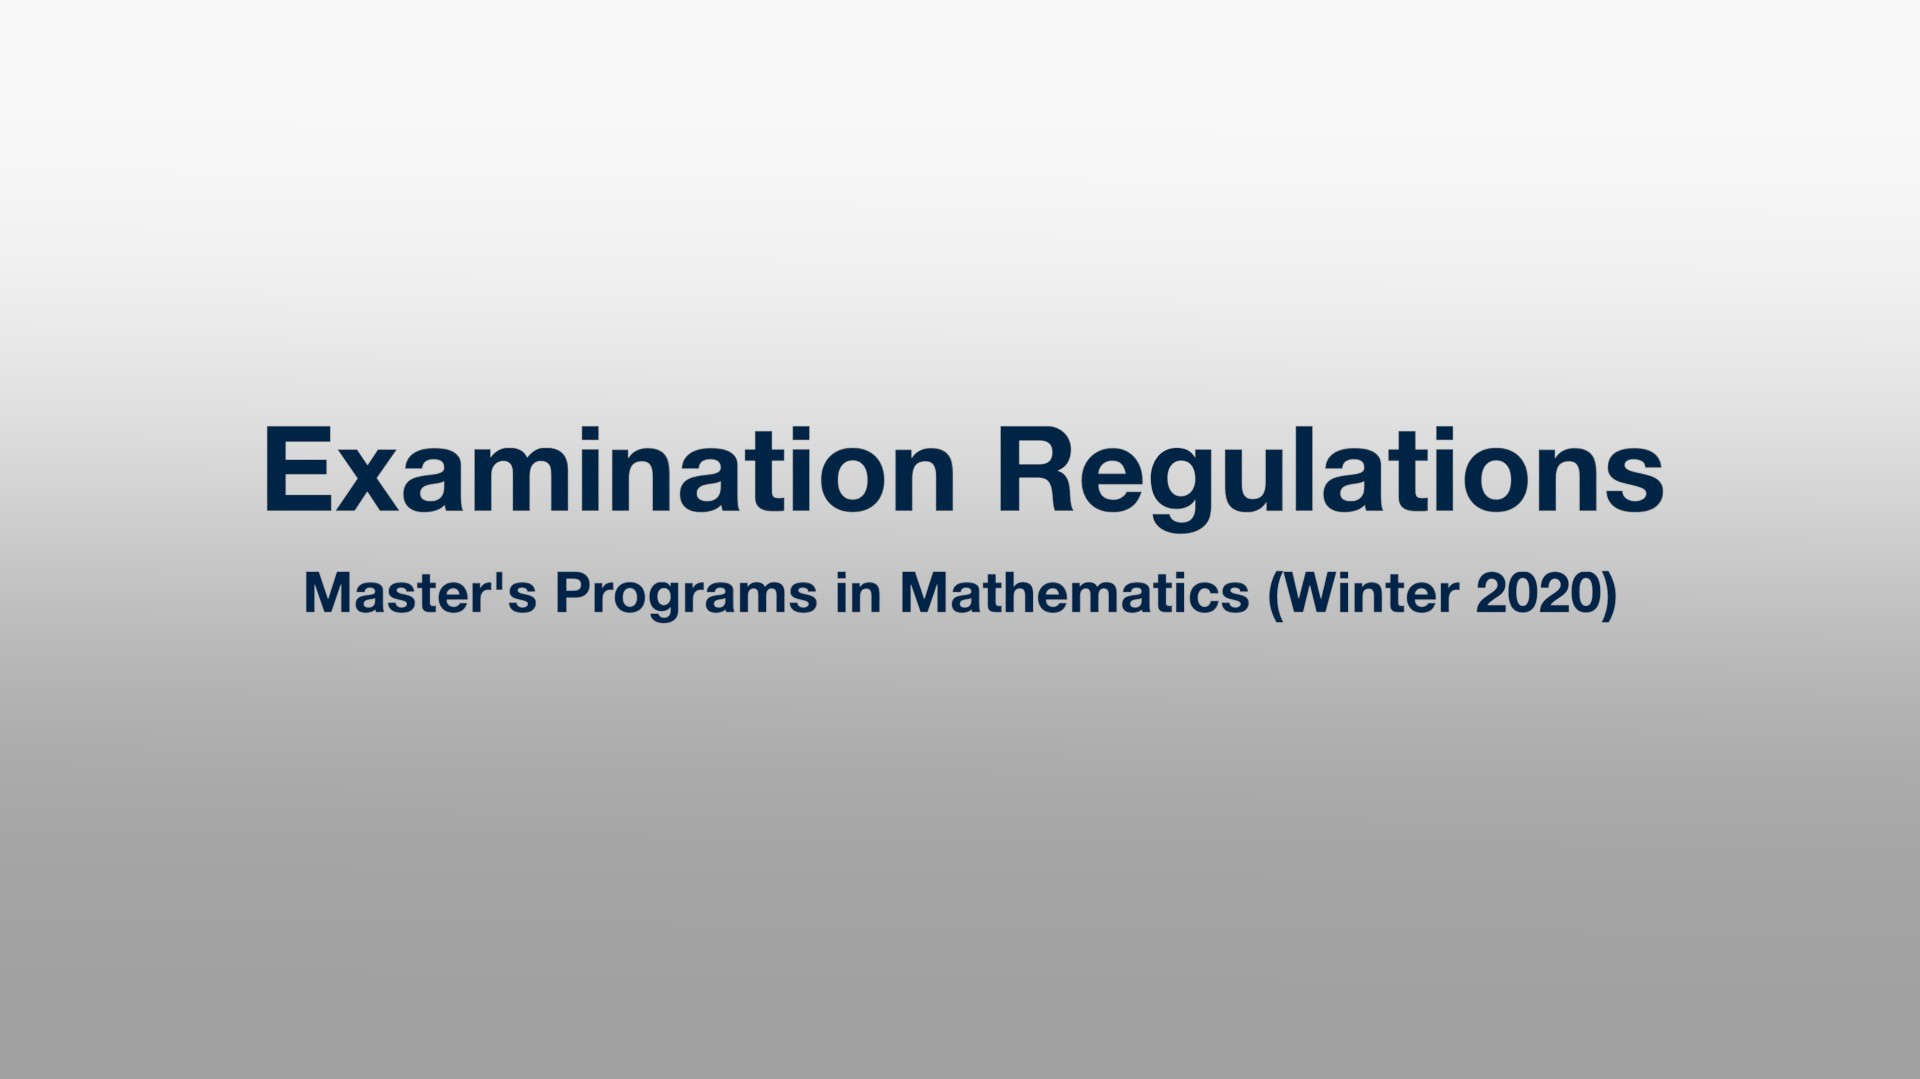 Introduction to Examination Regulations (Master's Programs)